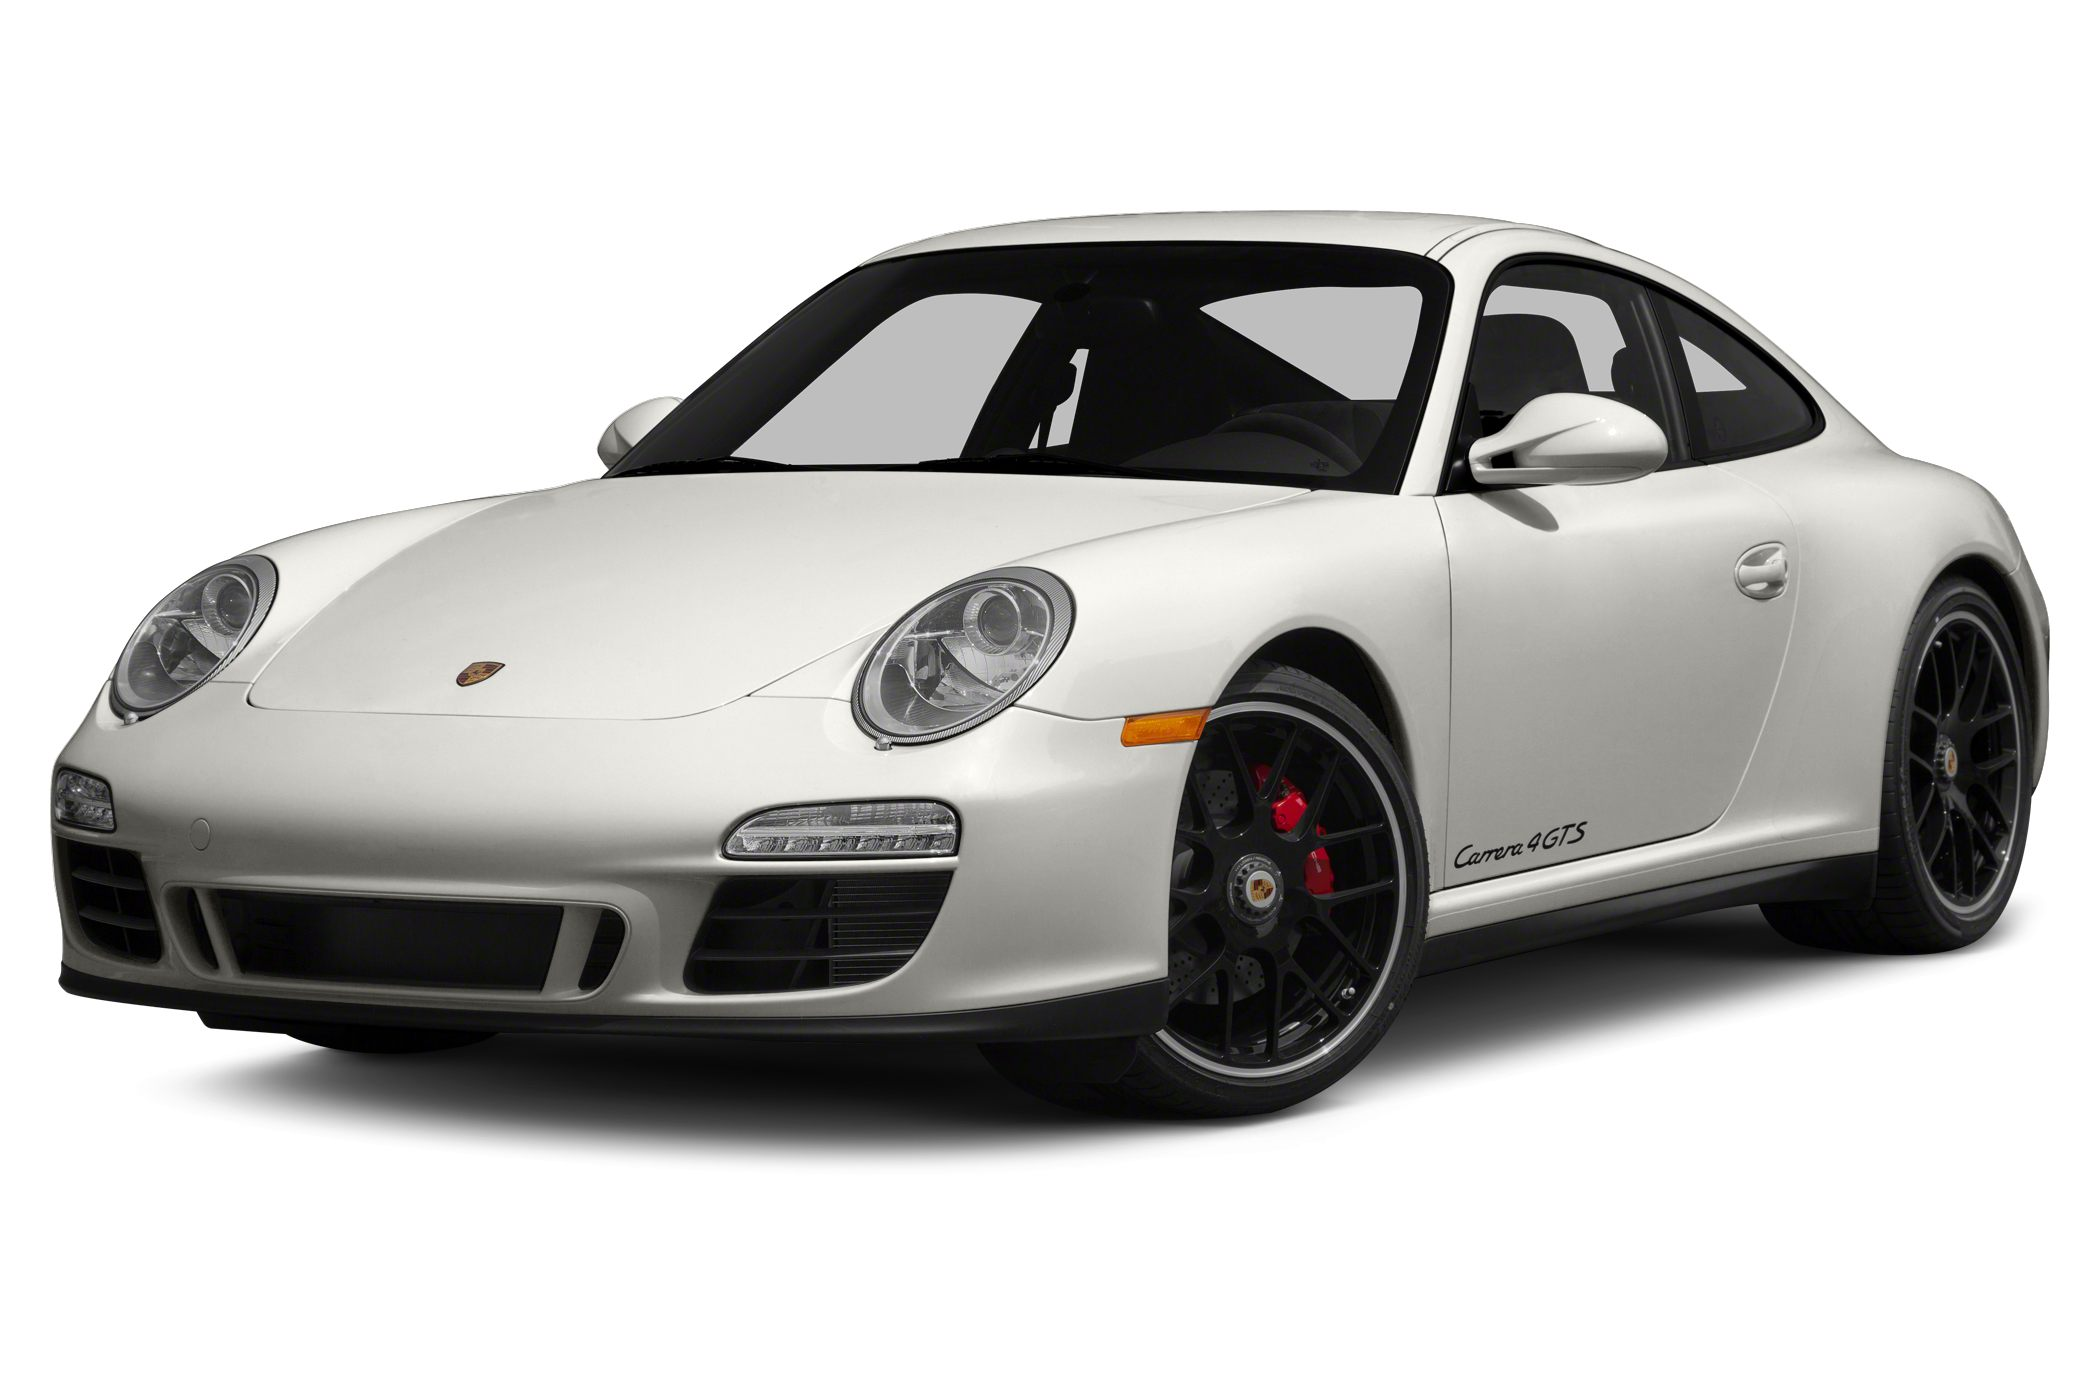 2012 Porsche 911 Carrera 4 GTS 2dr All wheel Drive Coupe Specs and Prices